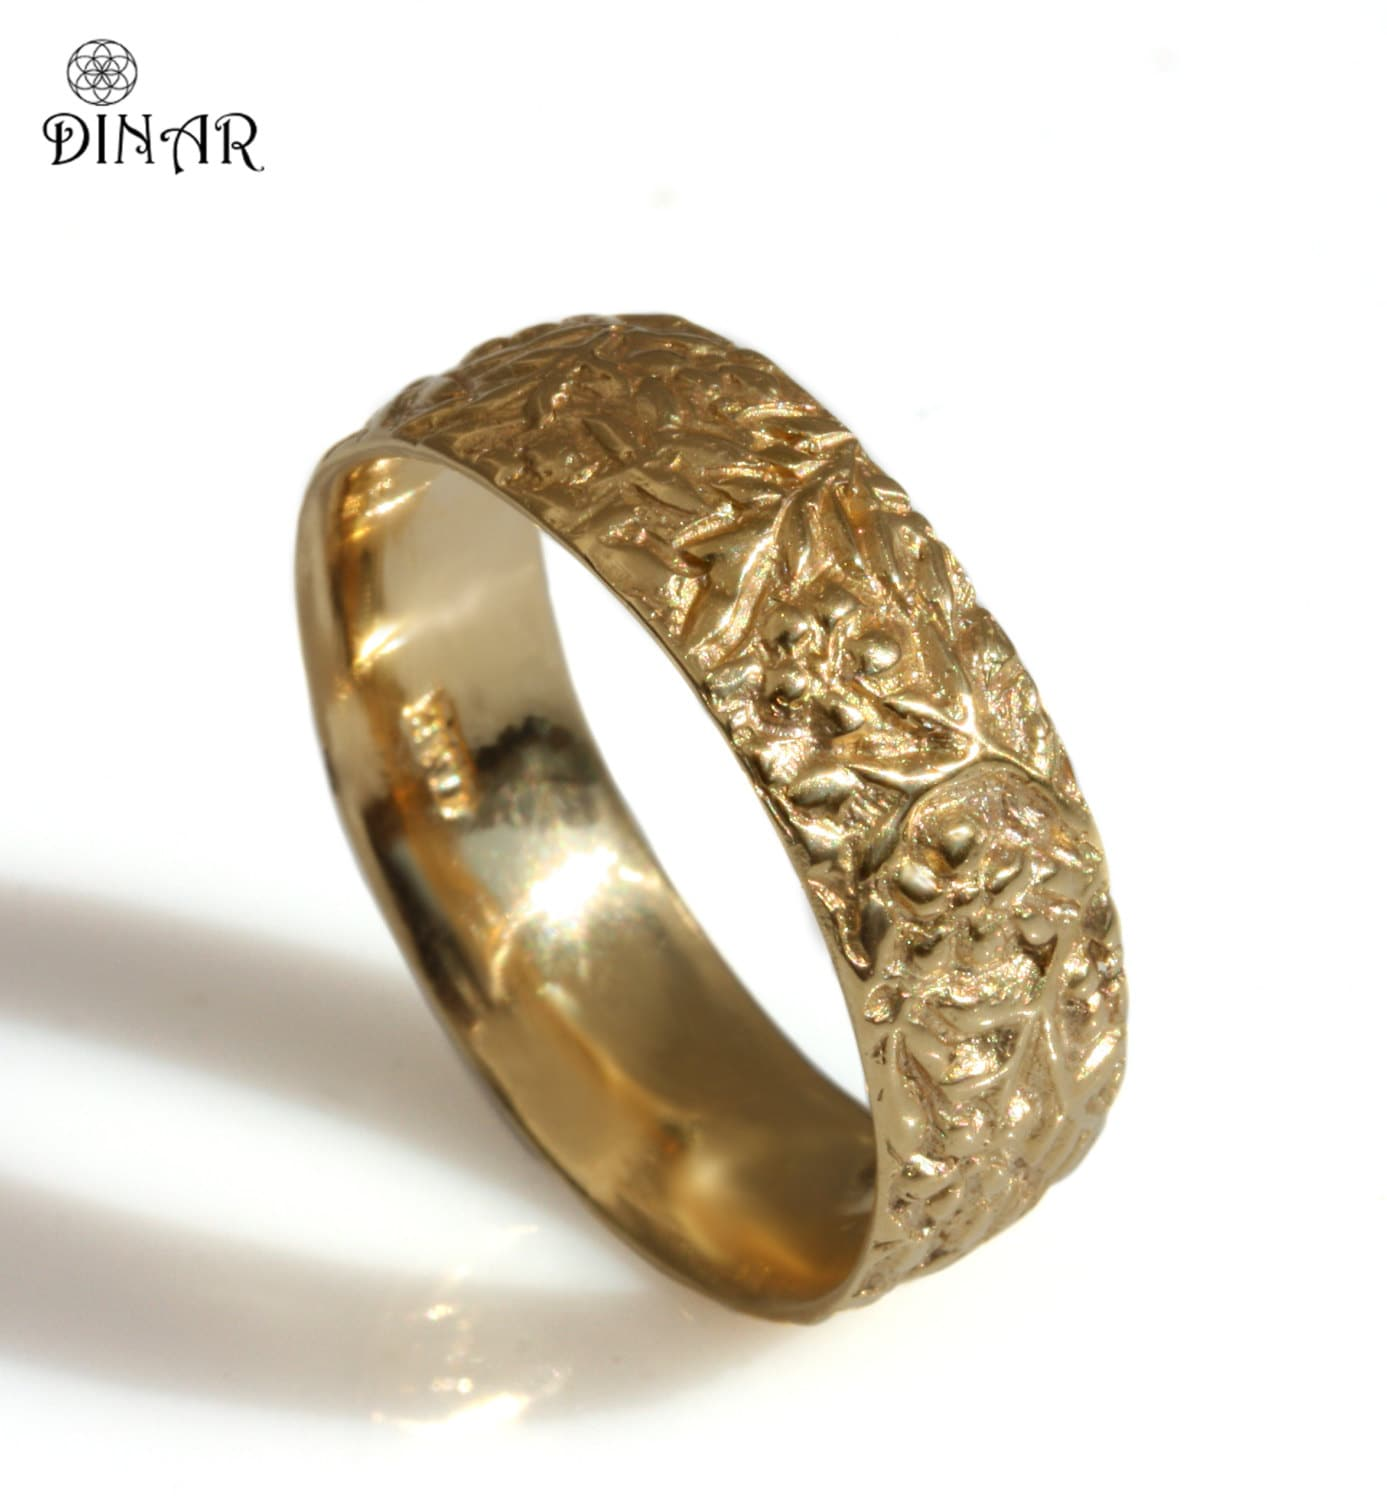 chinese wedding jewellery wide rings classic carving product for under best gift com ring dhgate jewelry gold women bands men color